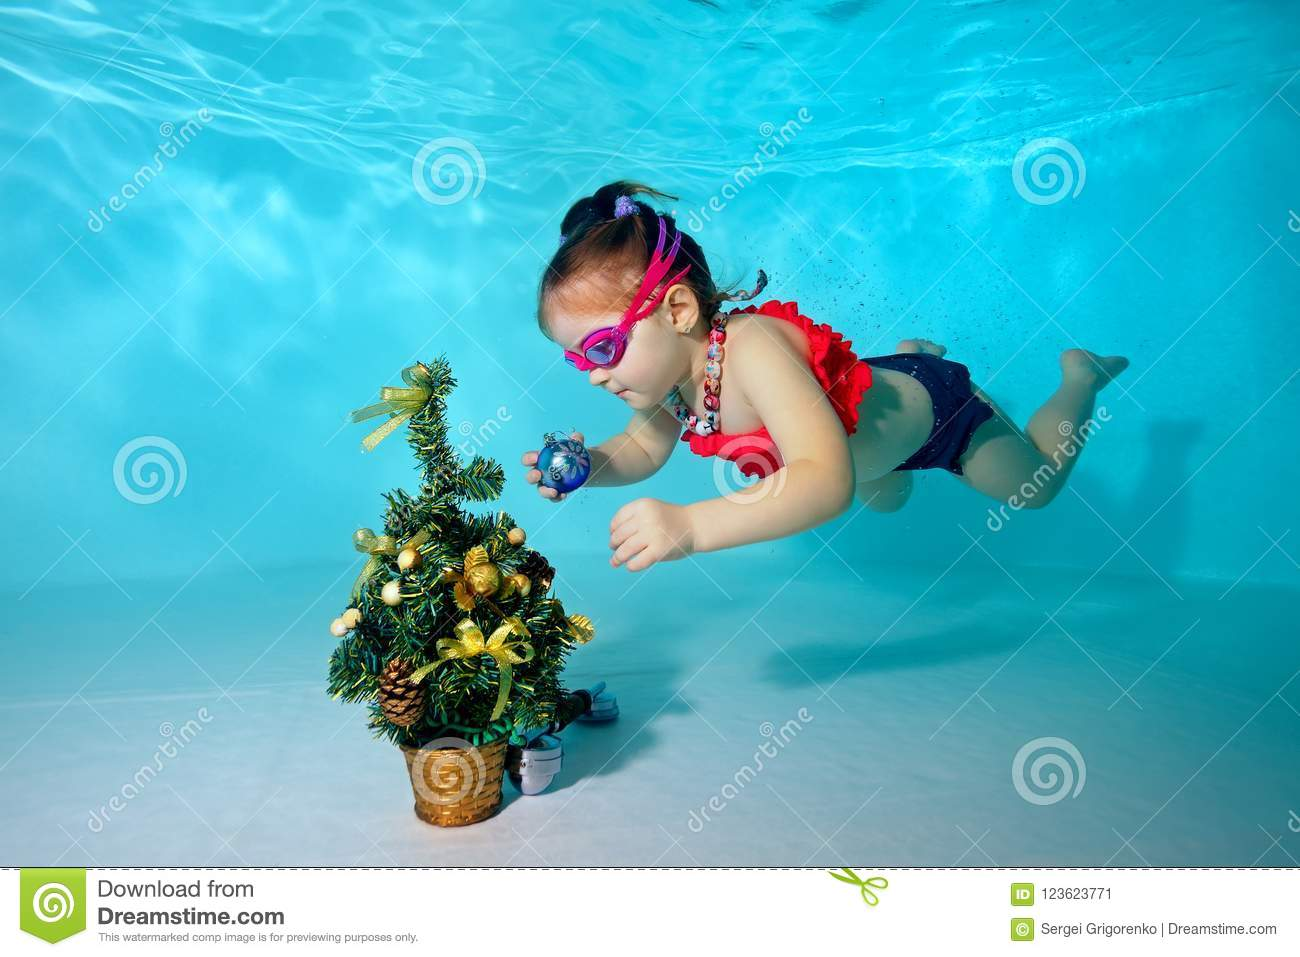 Child Underwater In The Pool Decorates The Christmas Tree With